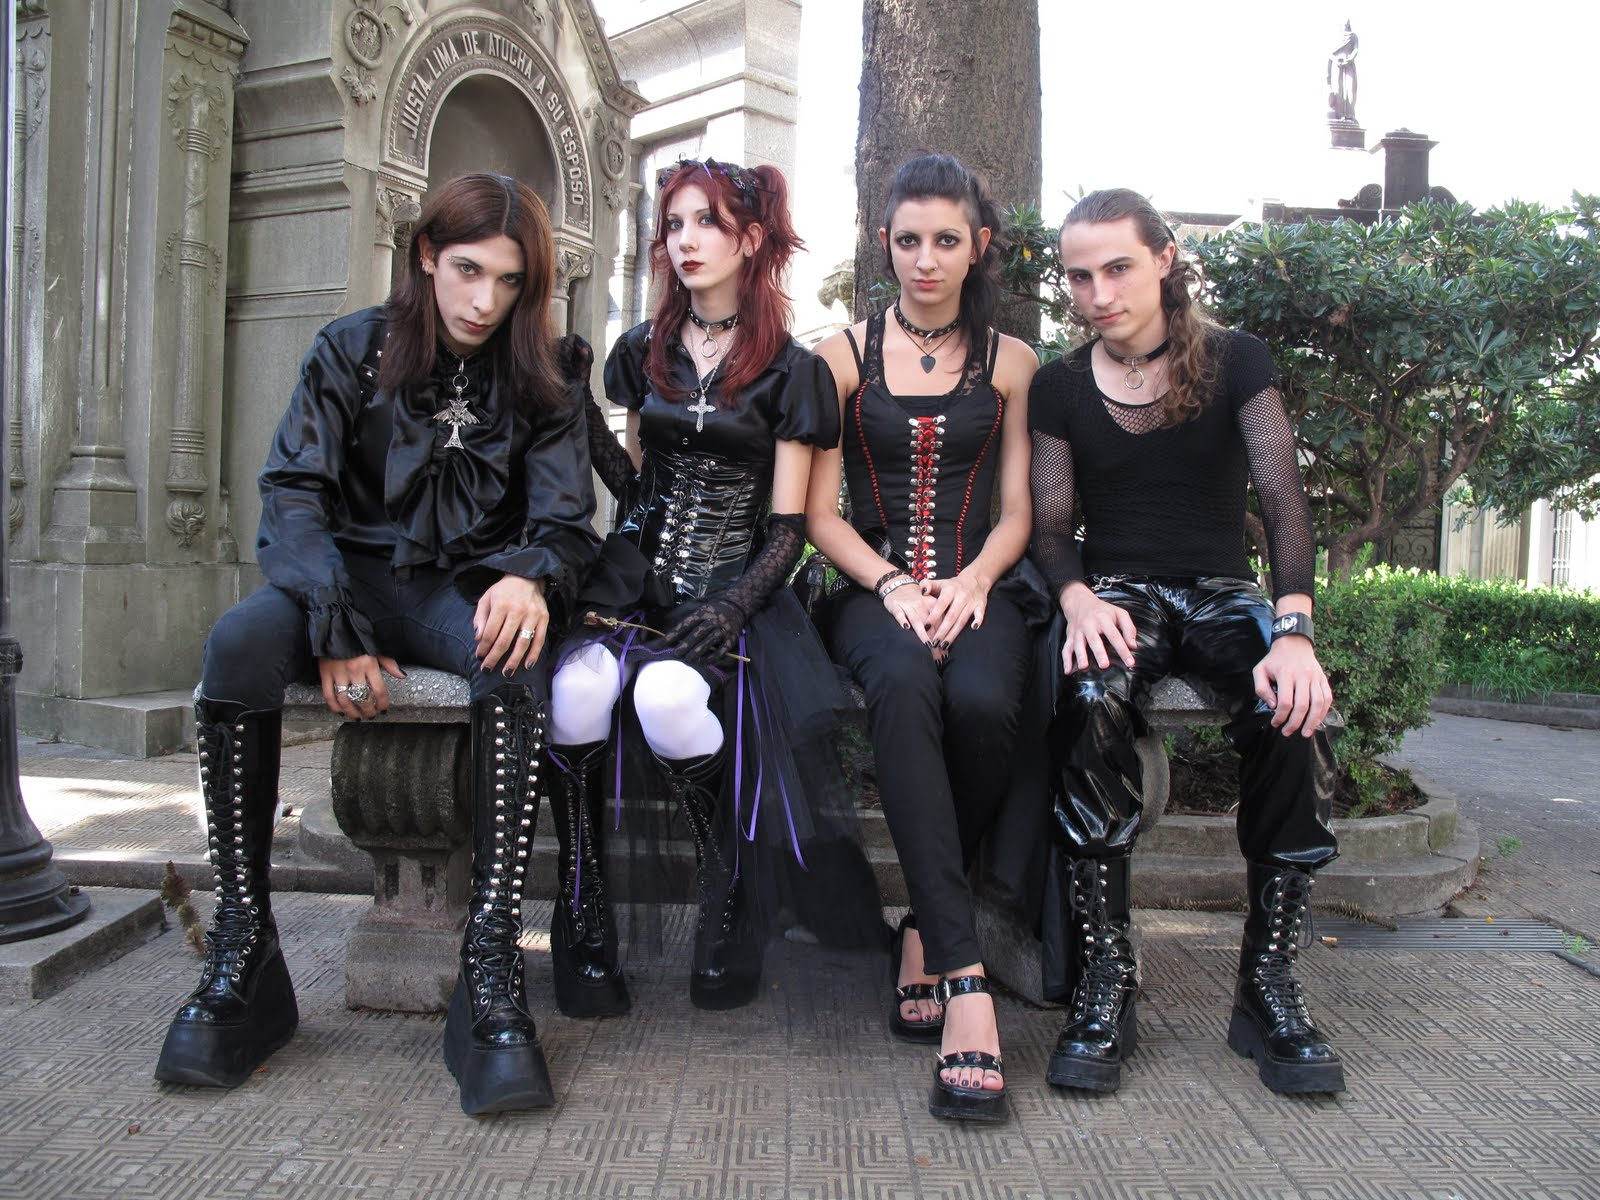 5 Things Wrong With Goth Subculture Right Now